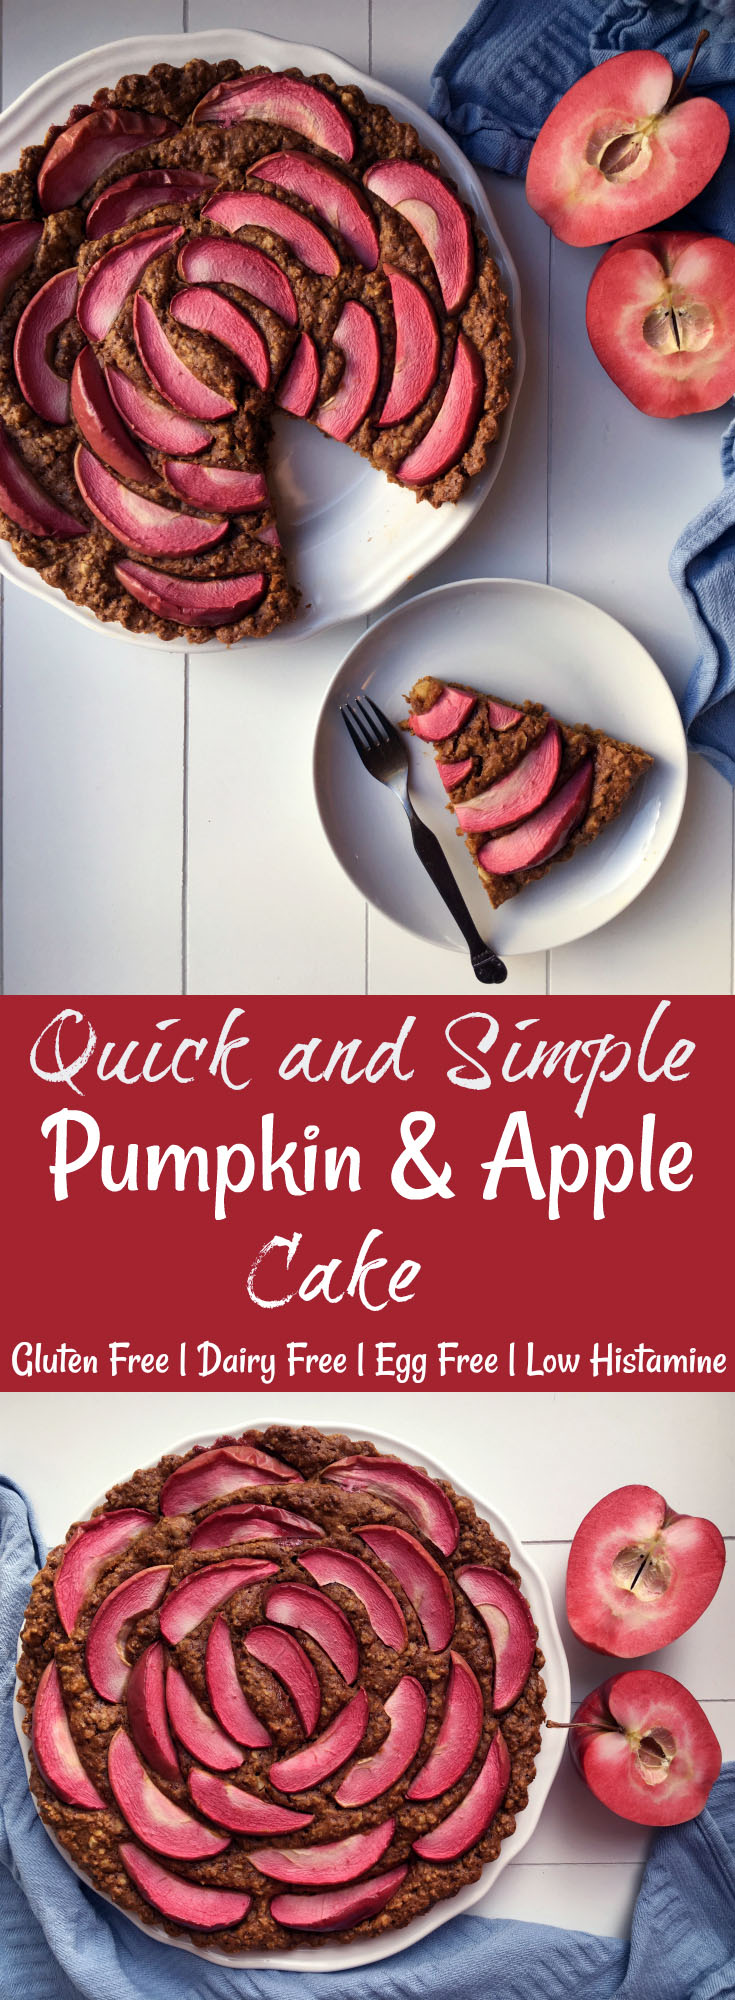 Quick and Simple Pumpkin Apple Cake - Gluten Free. With Beautiful Red Love Apples